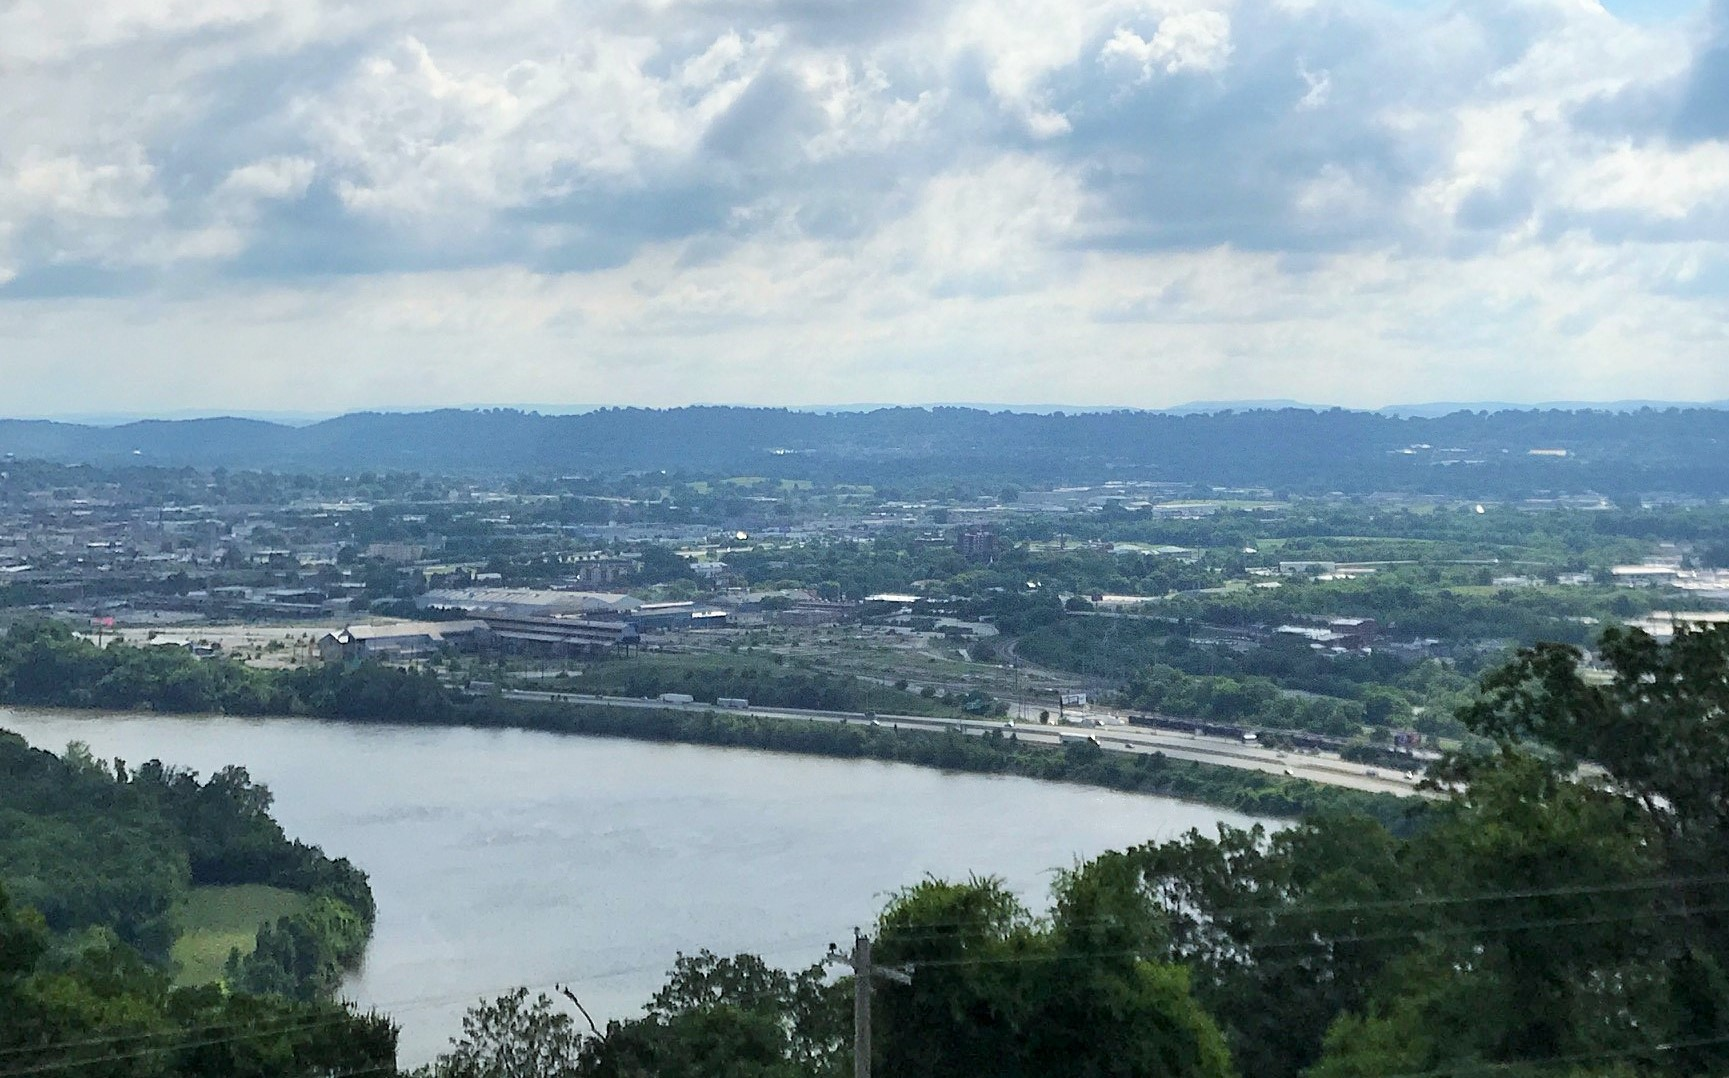 The view of Chattanooga from Lookout Mountain.